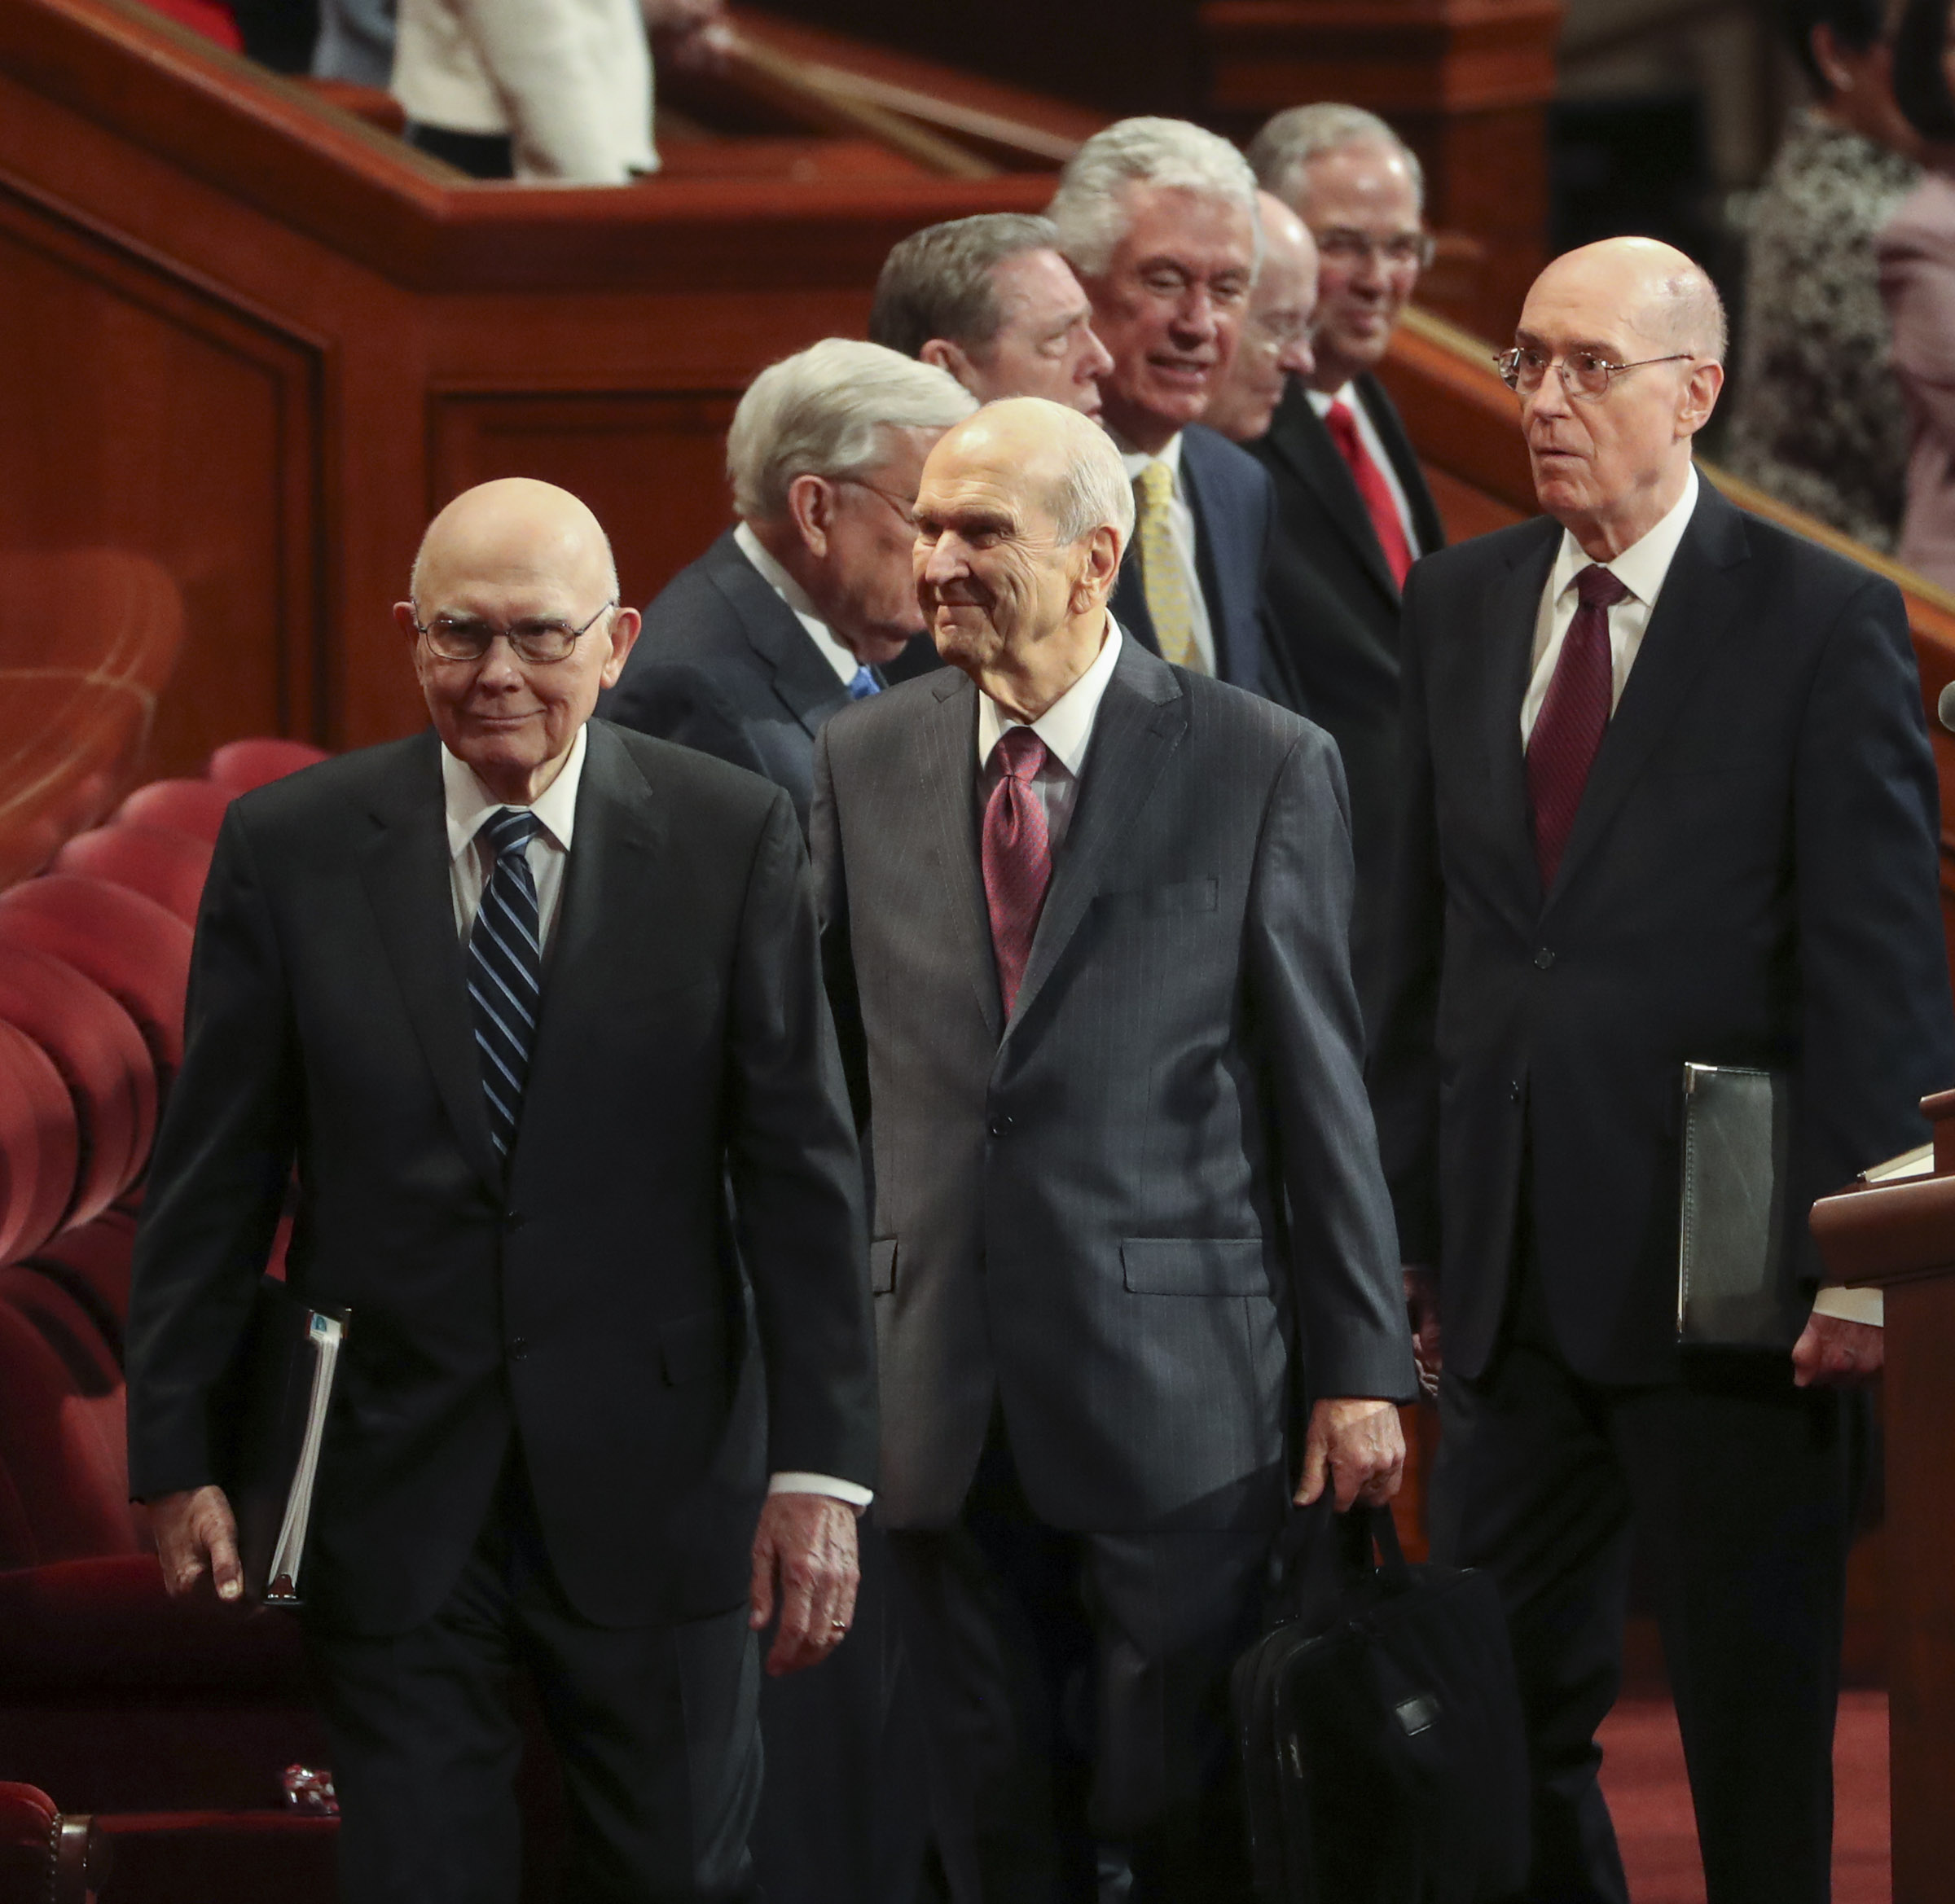 President Russell M. Nelson of The Church of Jesus Christ of Latter-day Saints, center, and his counselors, President Dallin H. Oaks, first counselor in the First Presidency, left, and President Henry B. Eyring, second counselor in the First Presidency, right, enter the Conference Center in Salt Lake City for the morning session of the 189th Annual General Conference of The Church of Jesus Christ of Latter-day Saints in Salt Lake City on Saturday, April 6, 2019.